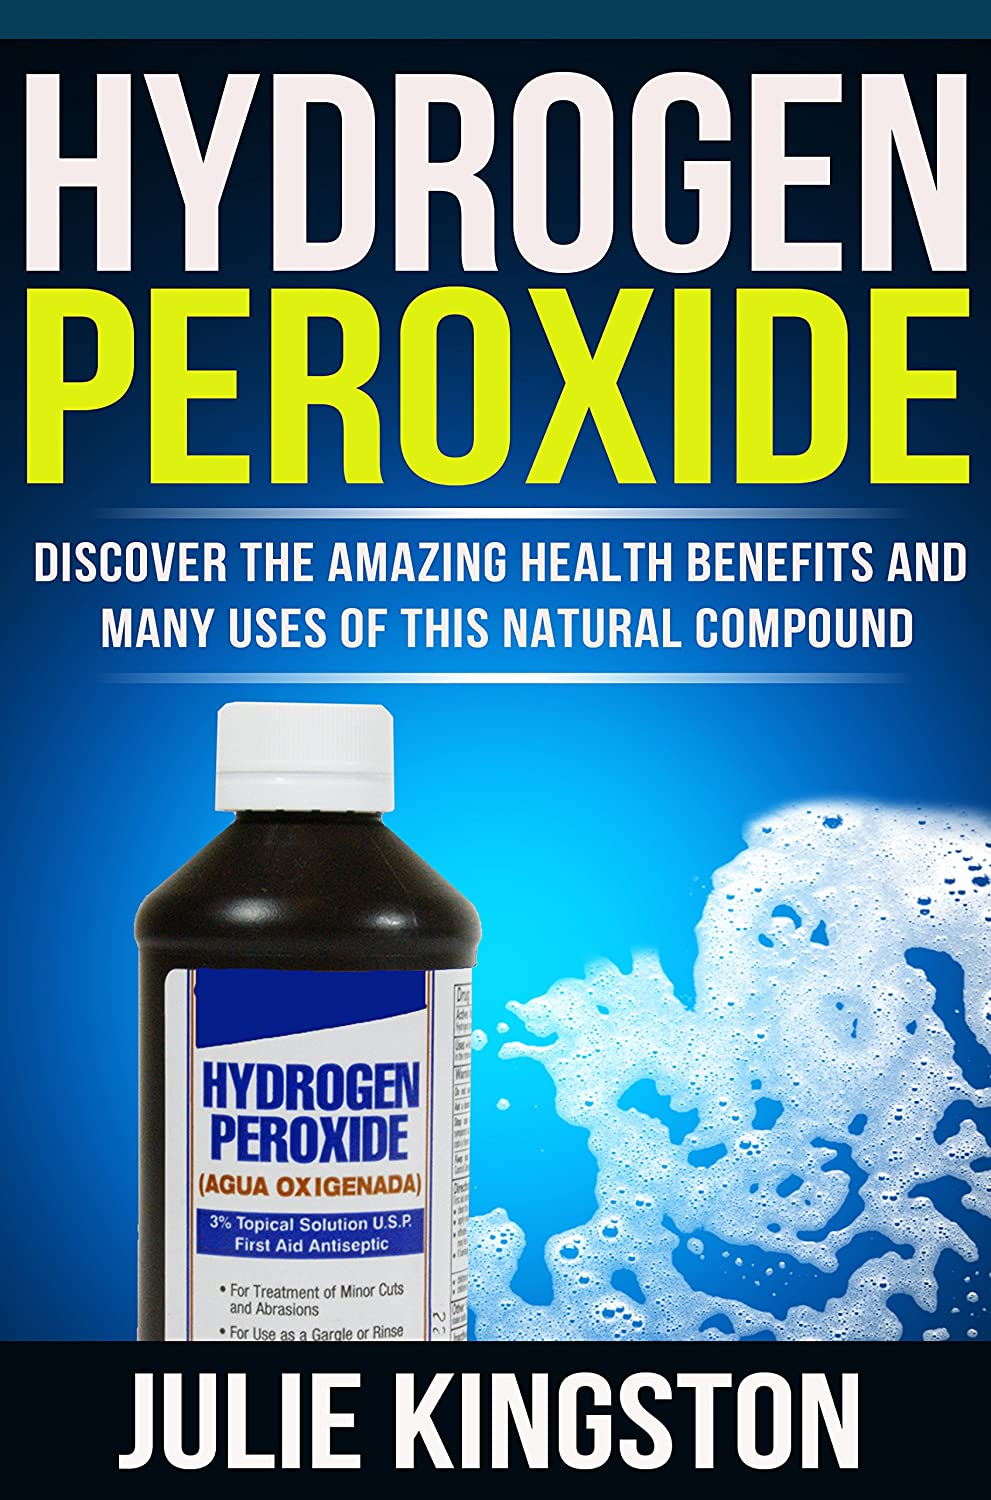 http://www.amazon.com/Hydrogen-Peroxide-Discover-Benefits-Compound-ebook/dp/B00P5AB1EE/ref=as_sl_pc_ss_til?tag=lettfromahome-20&linkCode=w01&linkId=KR27WKAKIXY2ACLH&creativeASIN=B00P5AB1EE